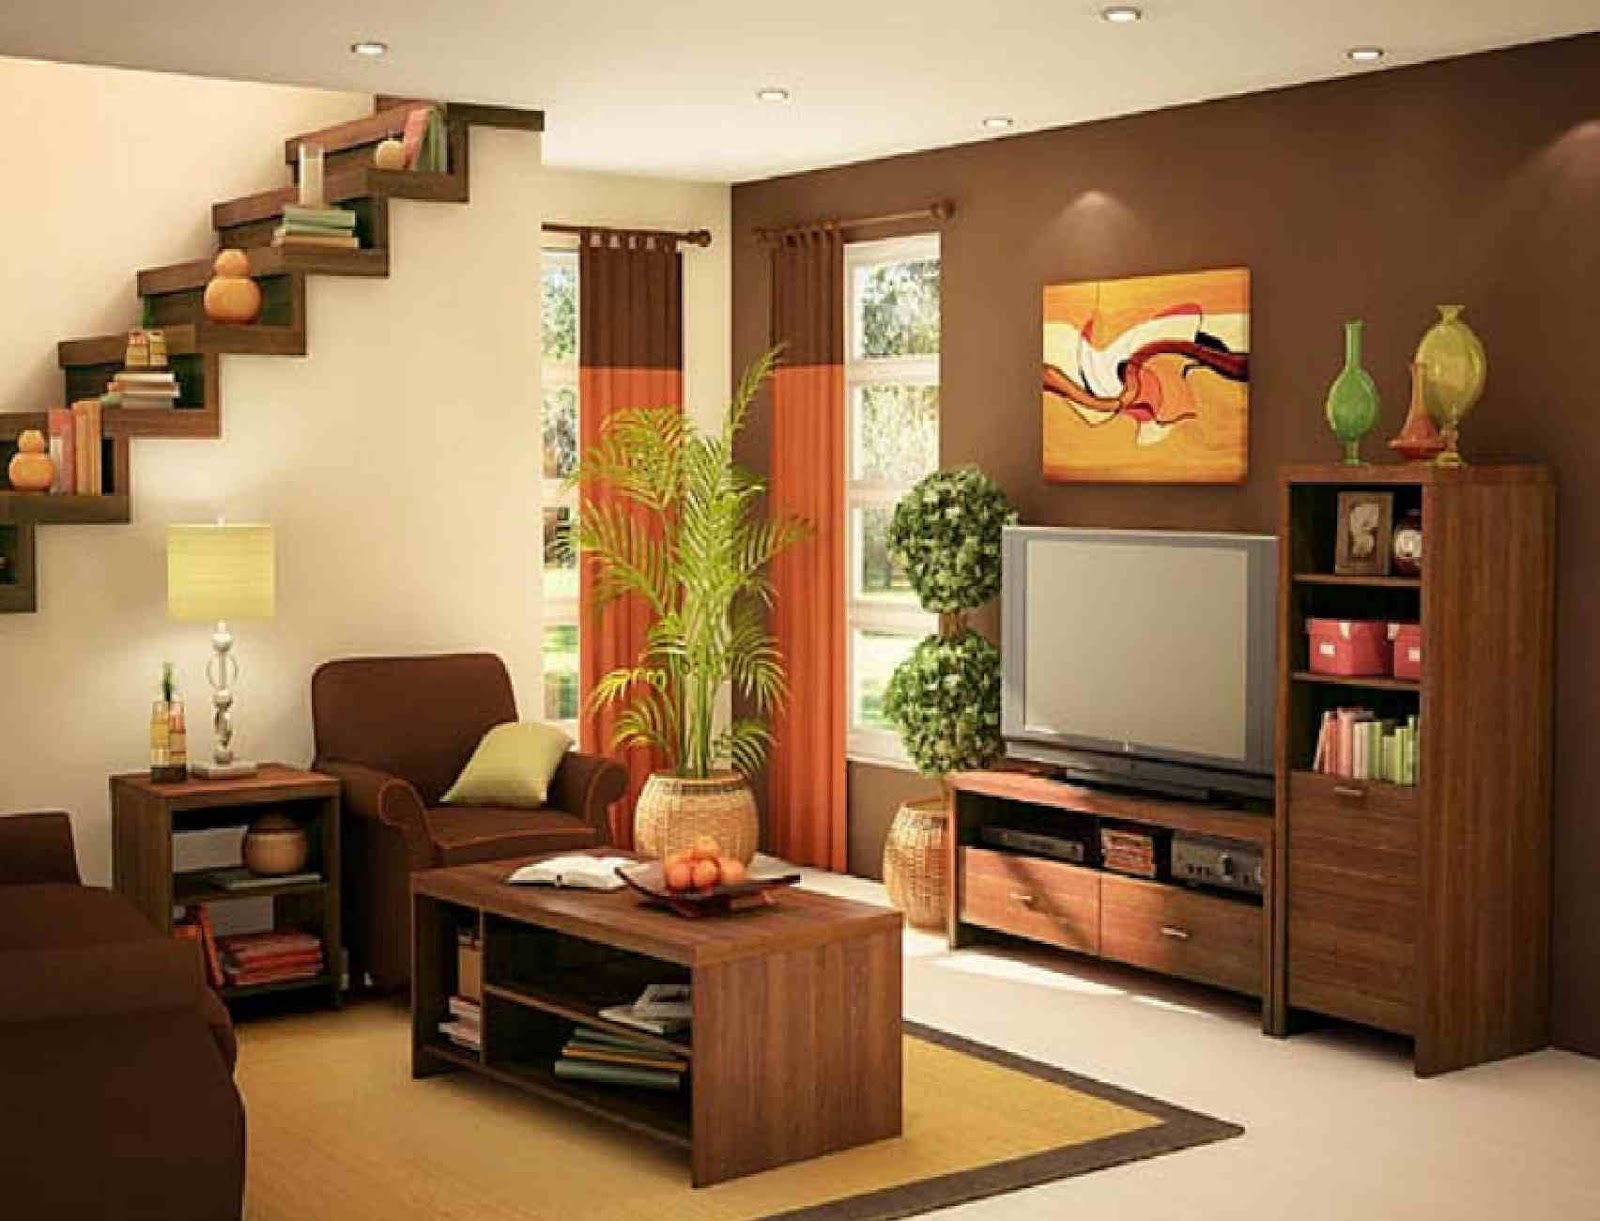 Home Interior Designs: Simple Living Room Designs